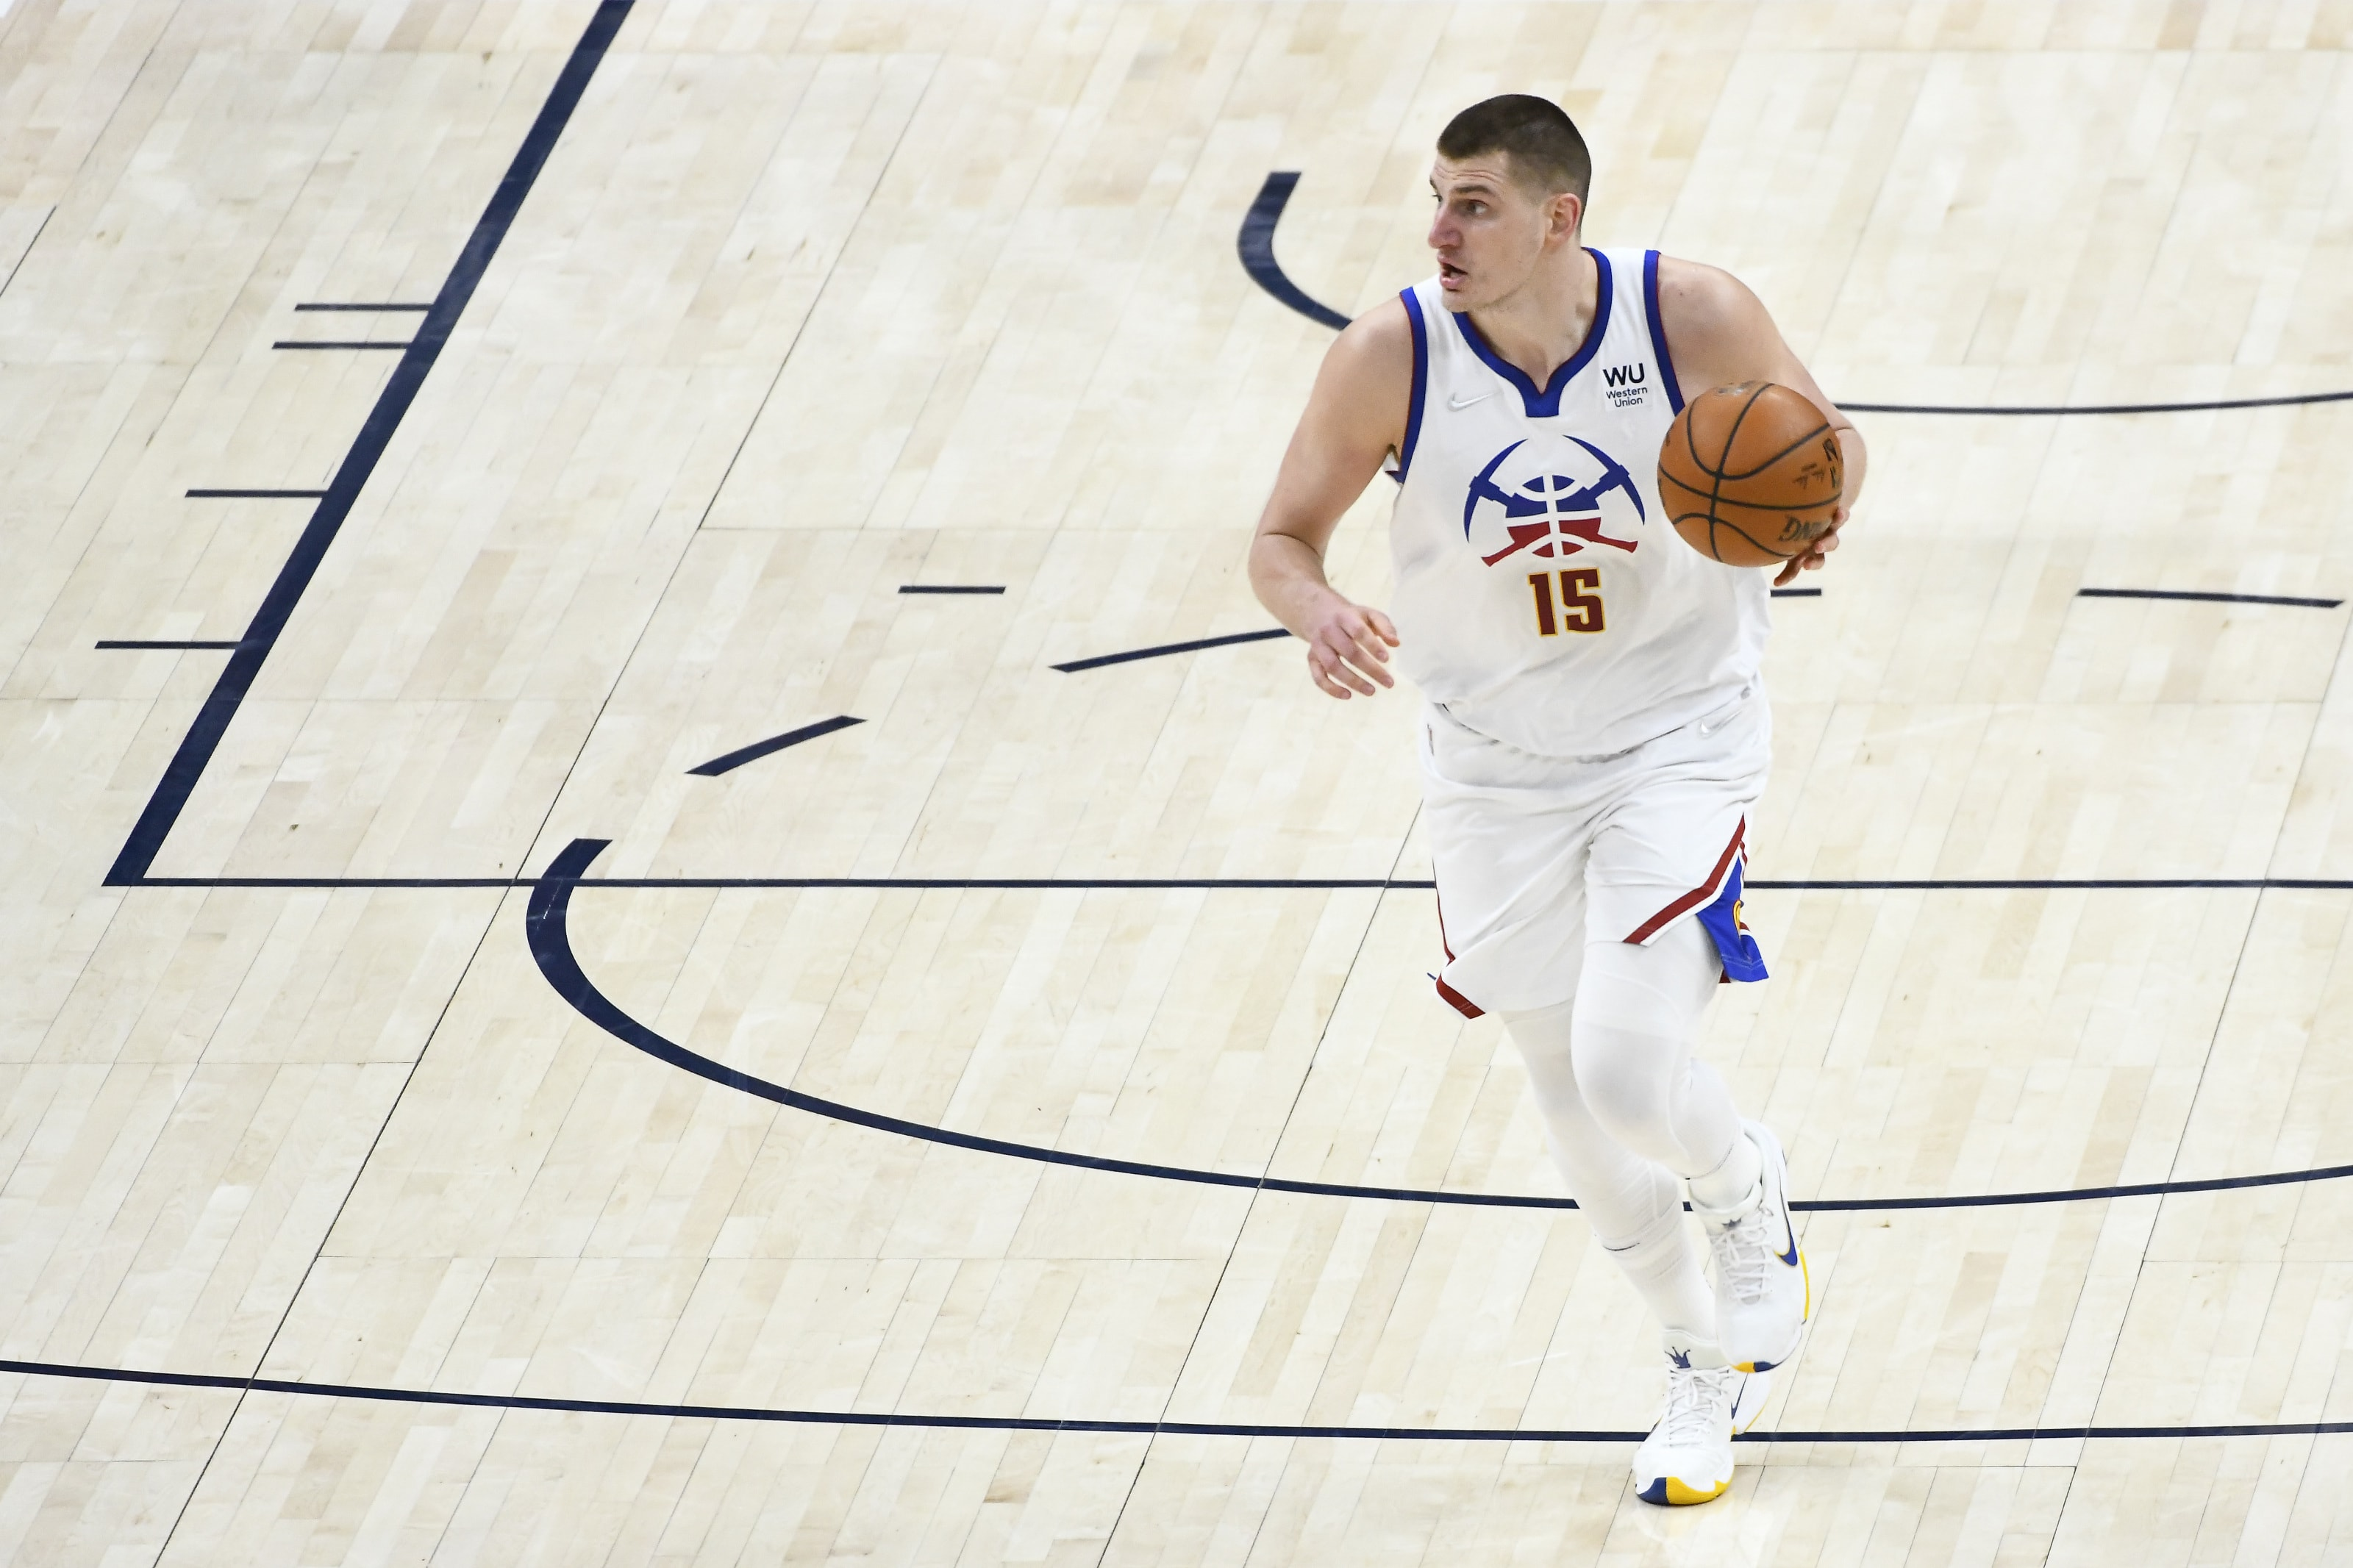 Nikola Jokic of the Denver Nuggets, the NBA 2020-21 MVP. (Photo by Alex Goodlett/Getty Images)